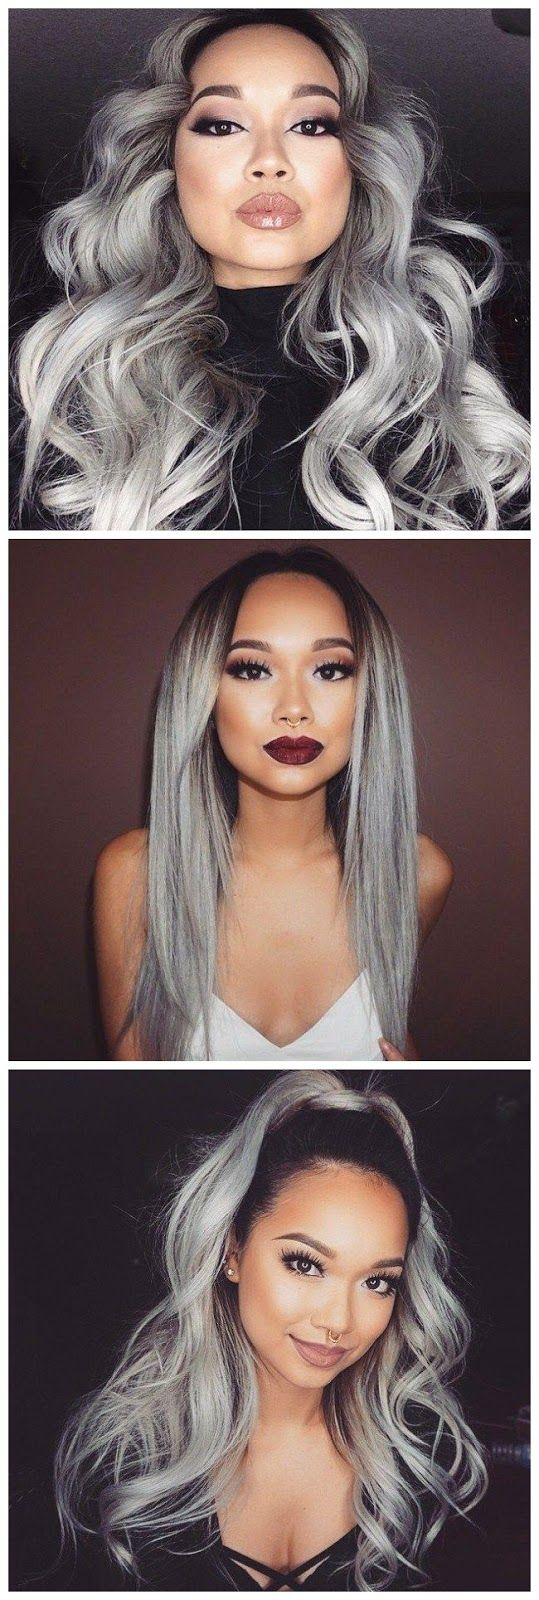 17 best hair images on Pinterest | Grey hair, Hair colour and Going gray